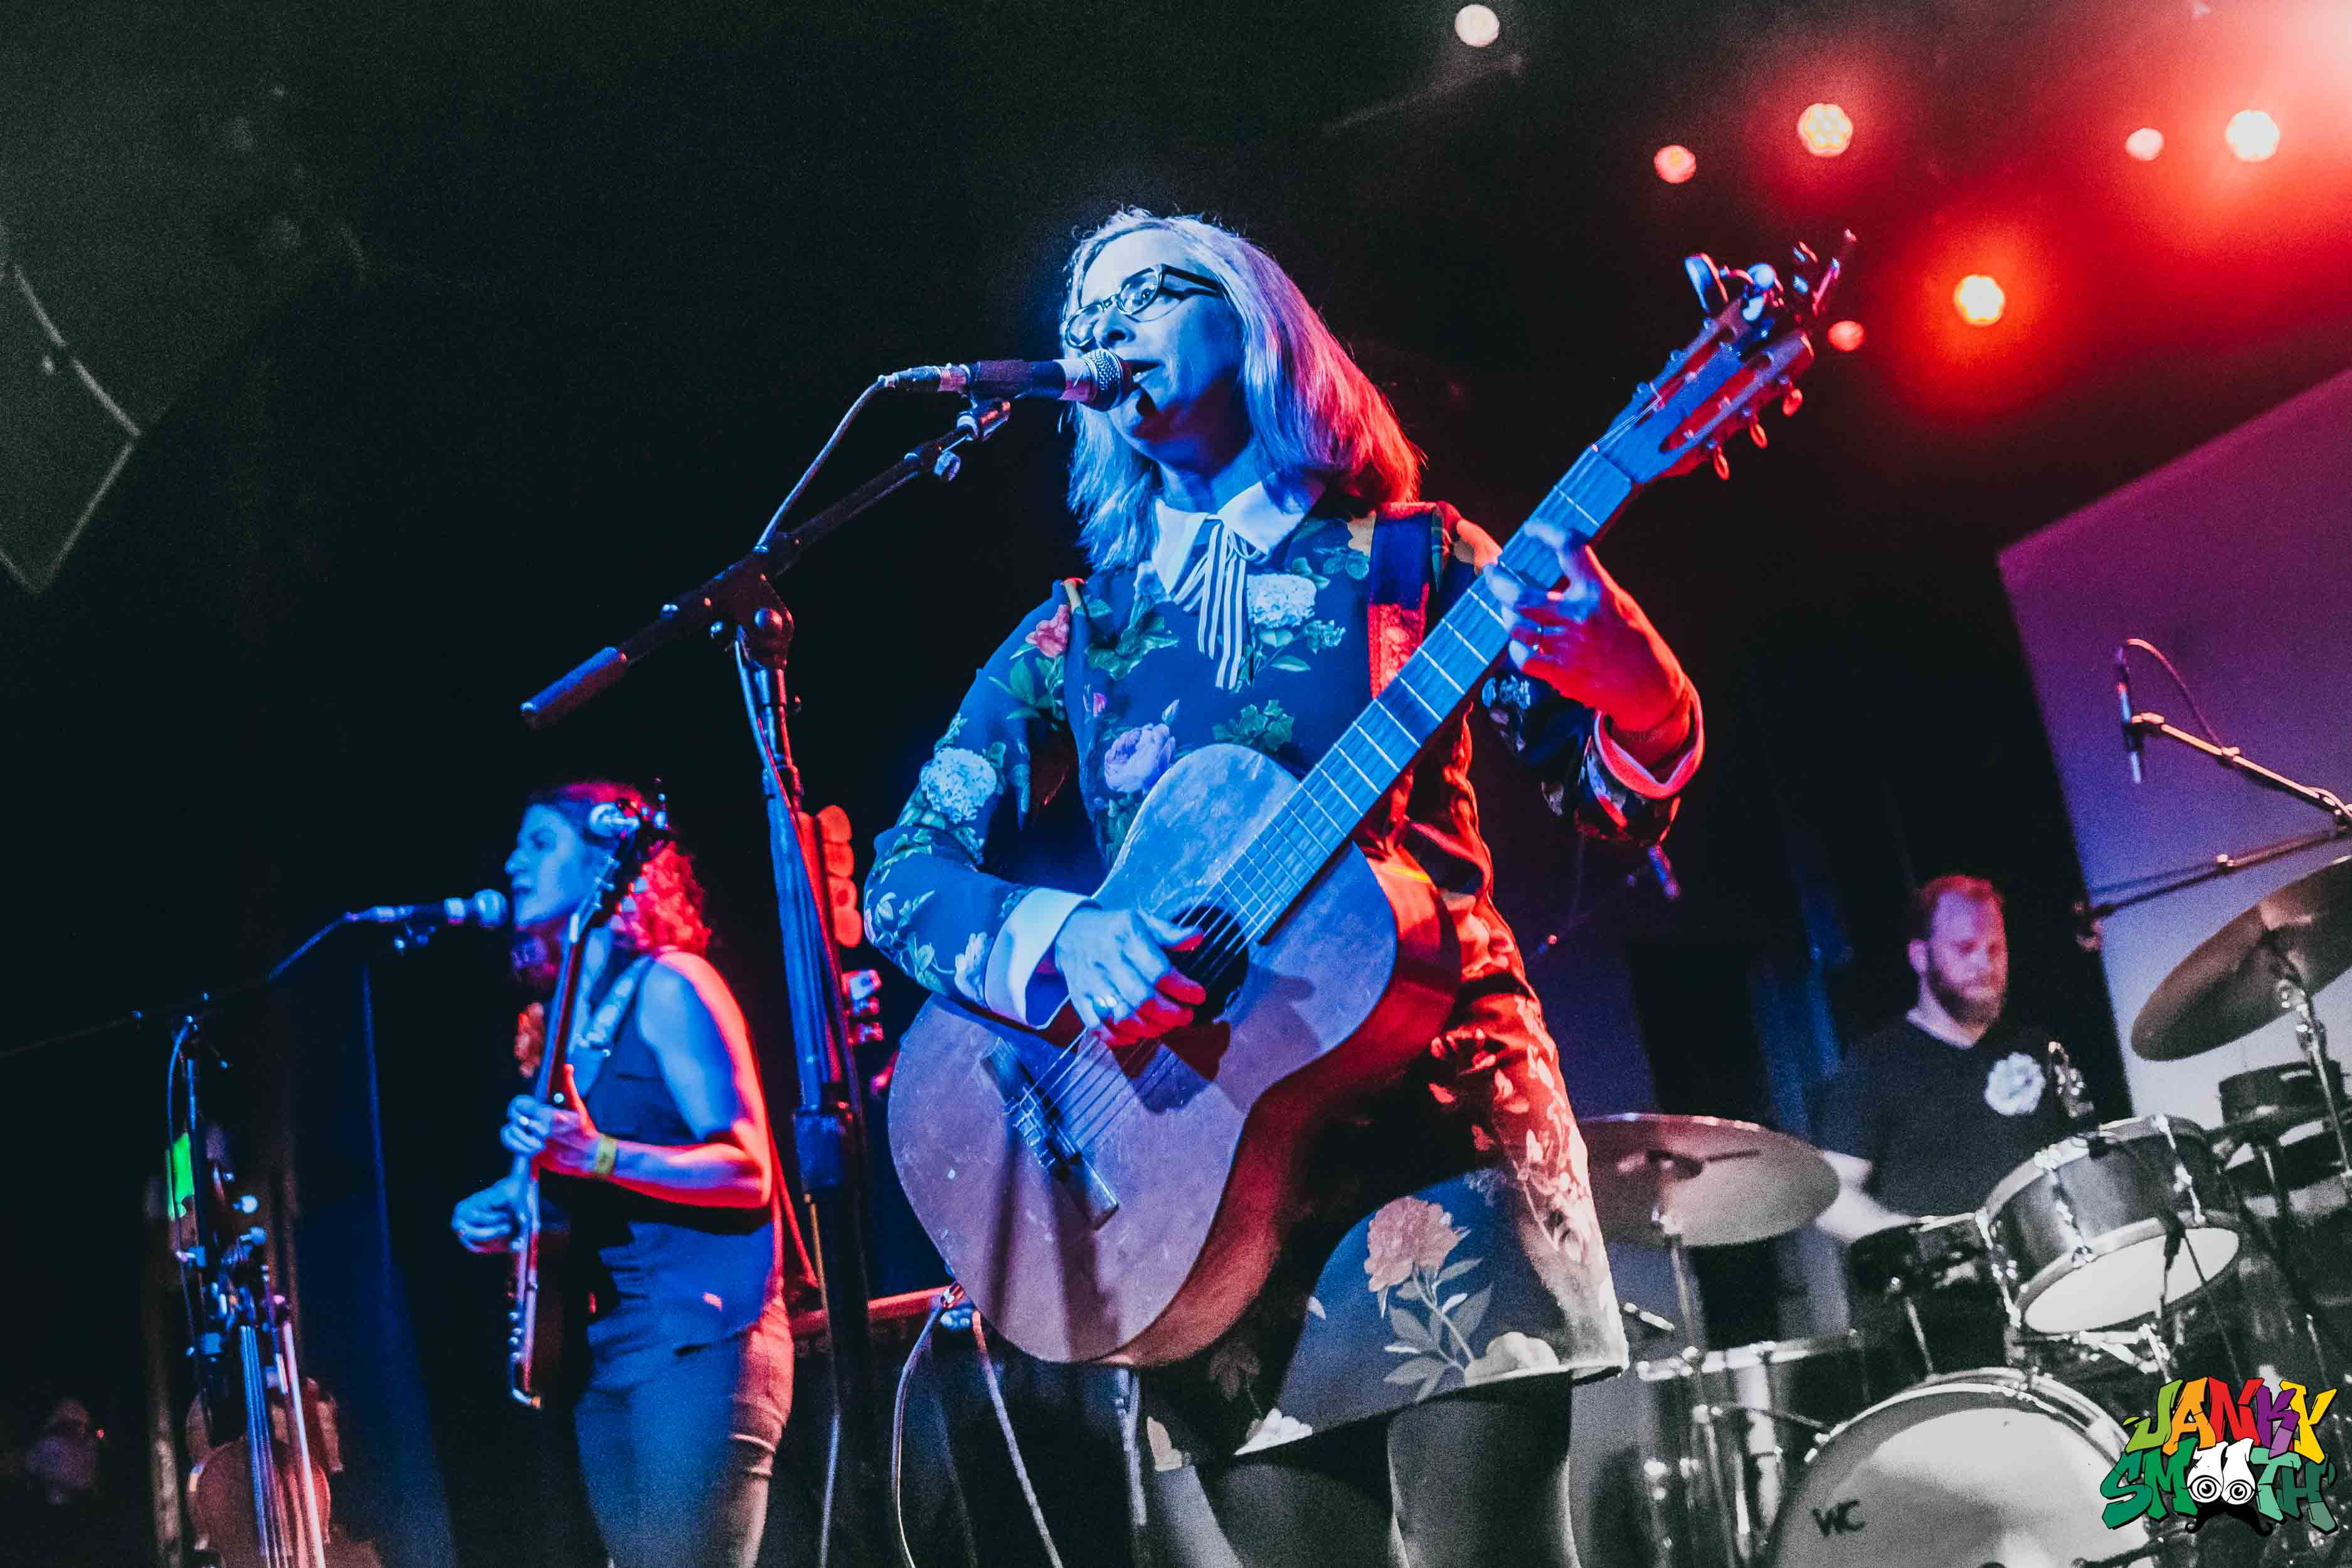 Laura Veirs